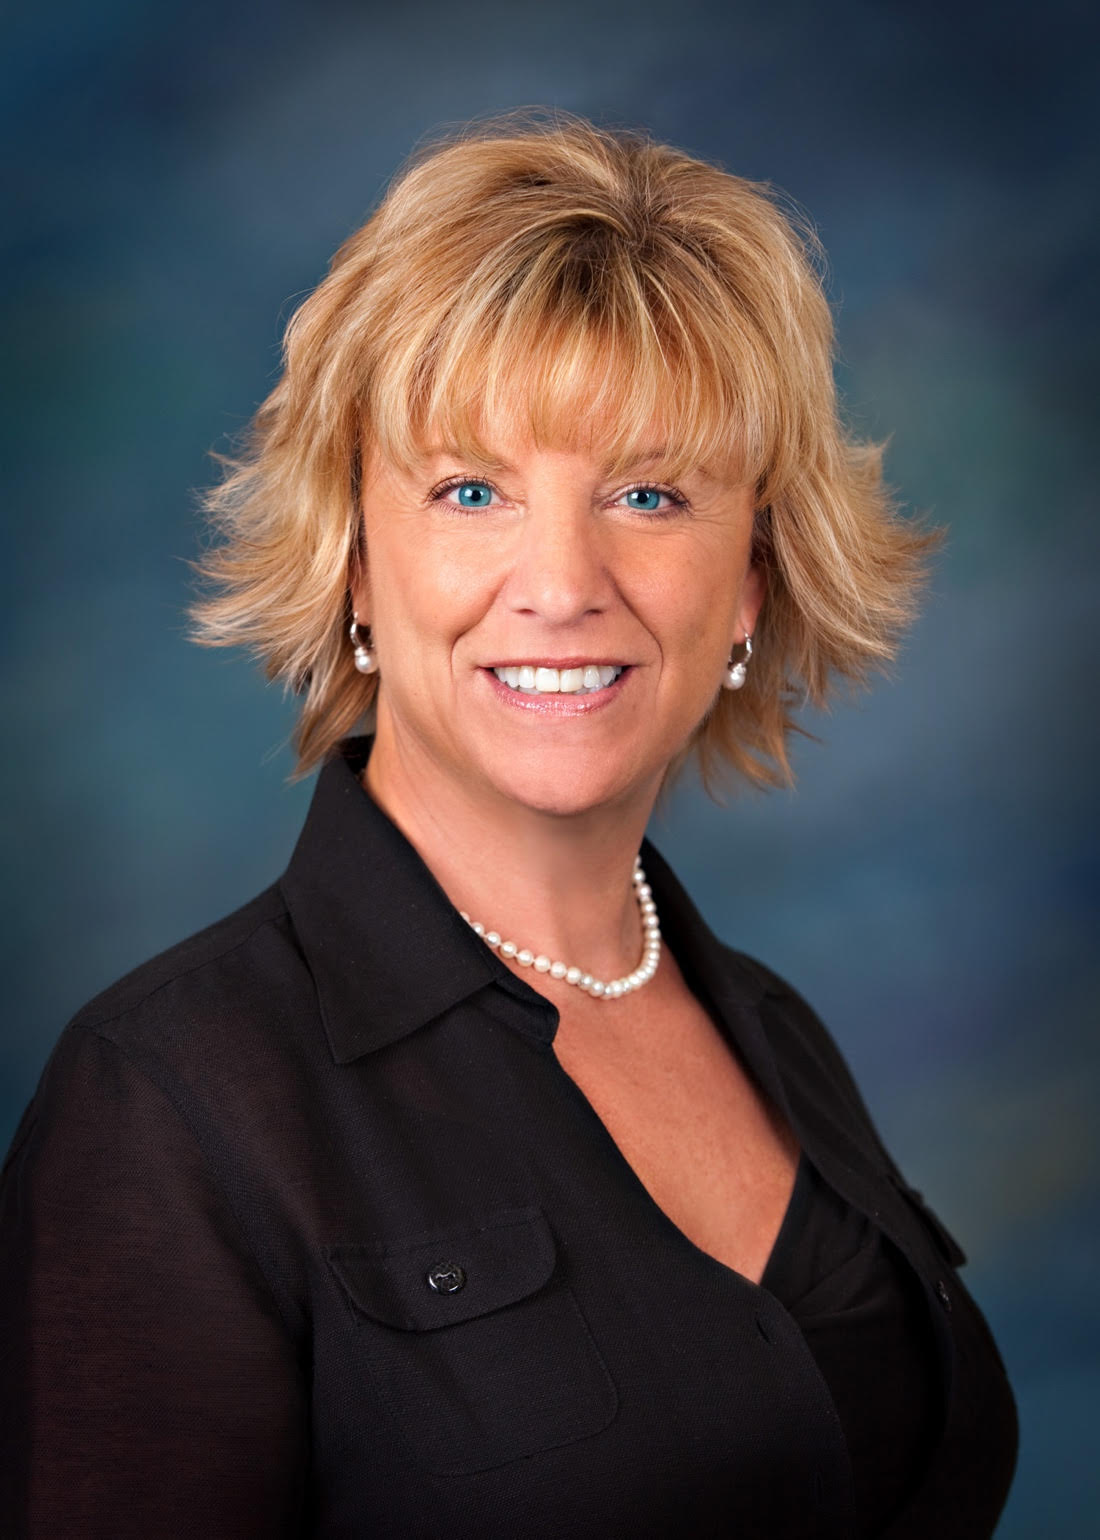 Newbold Advisors, LLC Announces the Addition of Arleen Scavone to Its Management Team